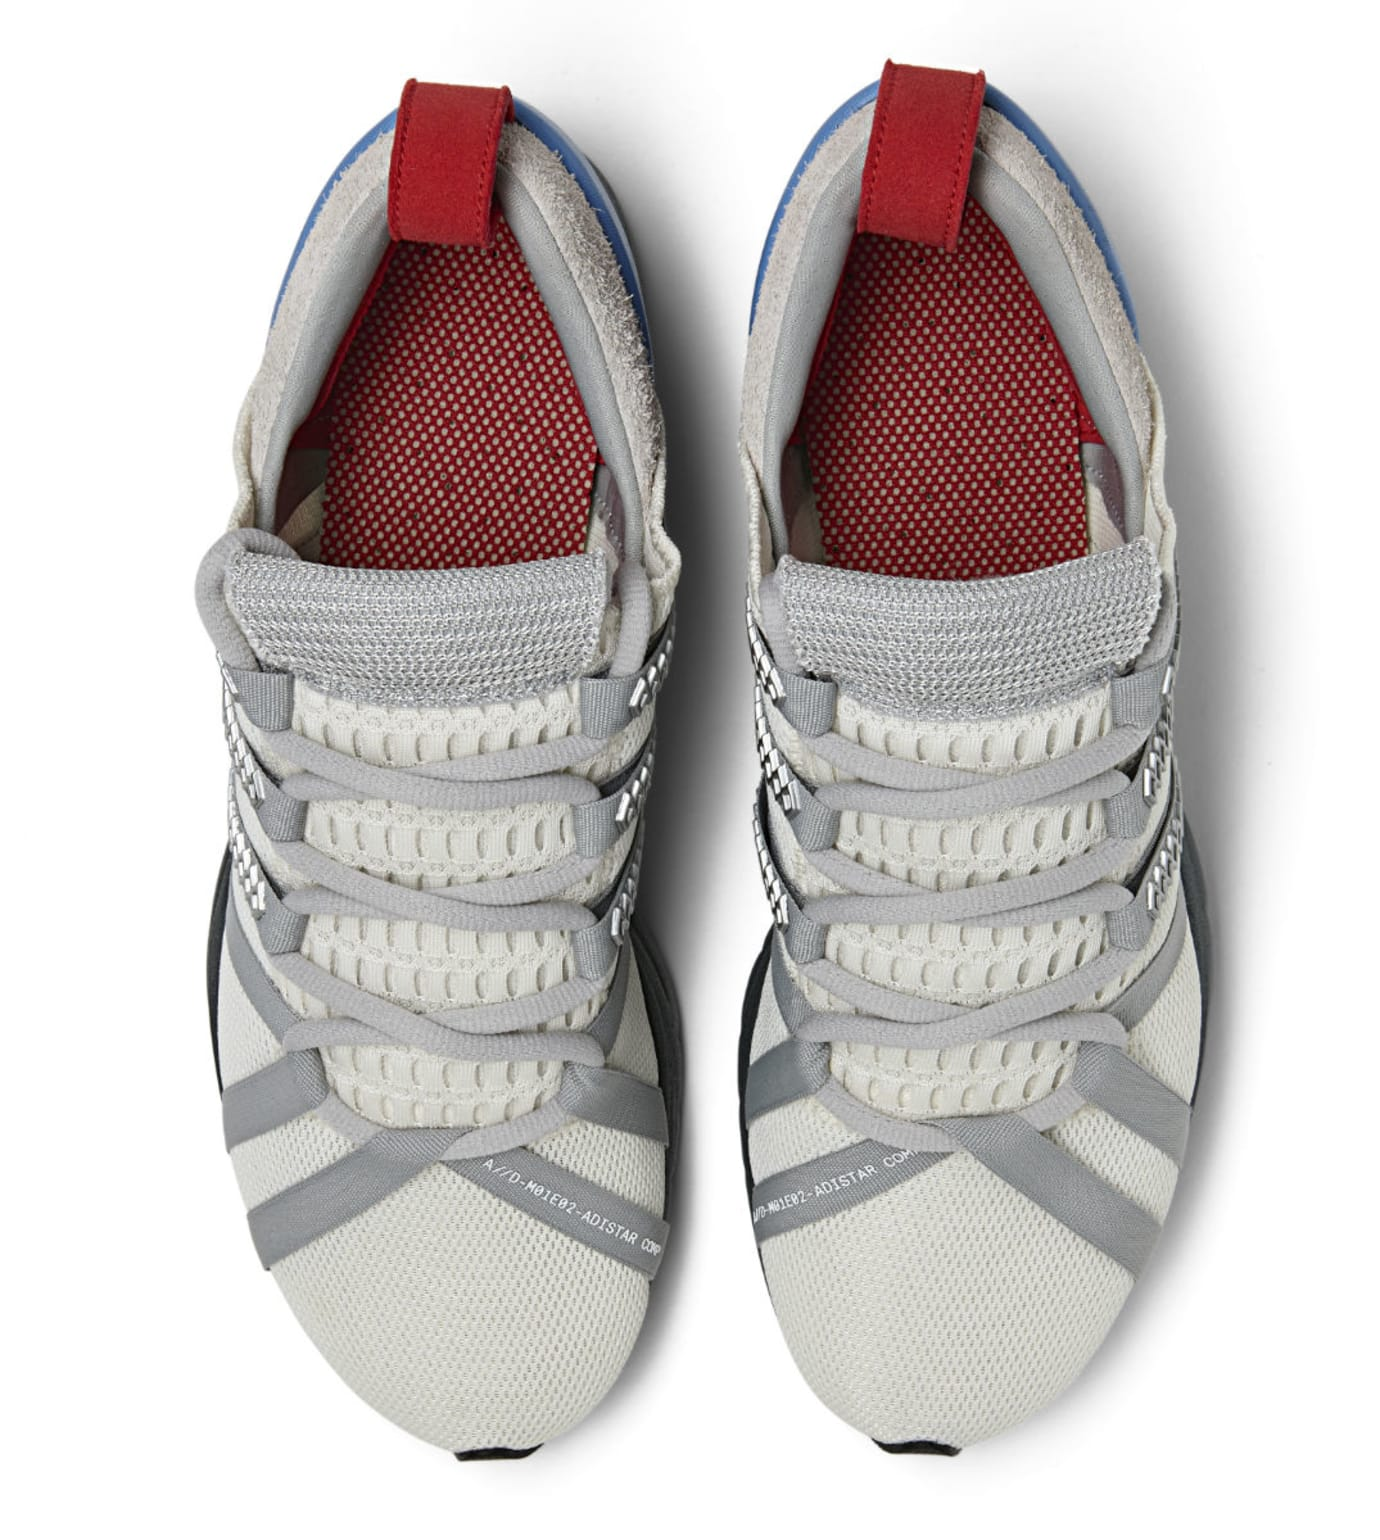 finest selection cdfe4 2264a hot sale online e55f6 6cb5c adidas adistar comp ad release date top by9836